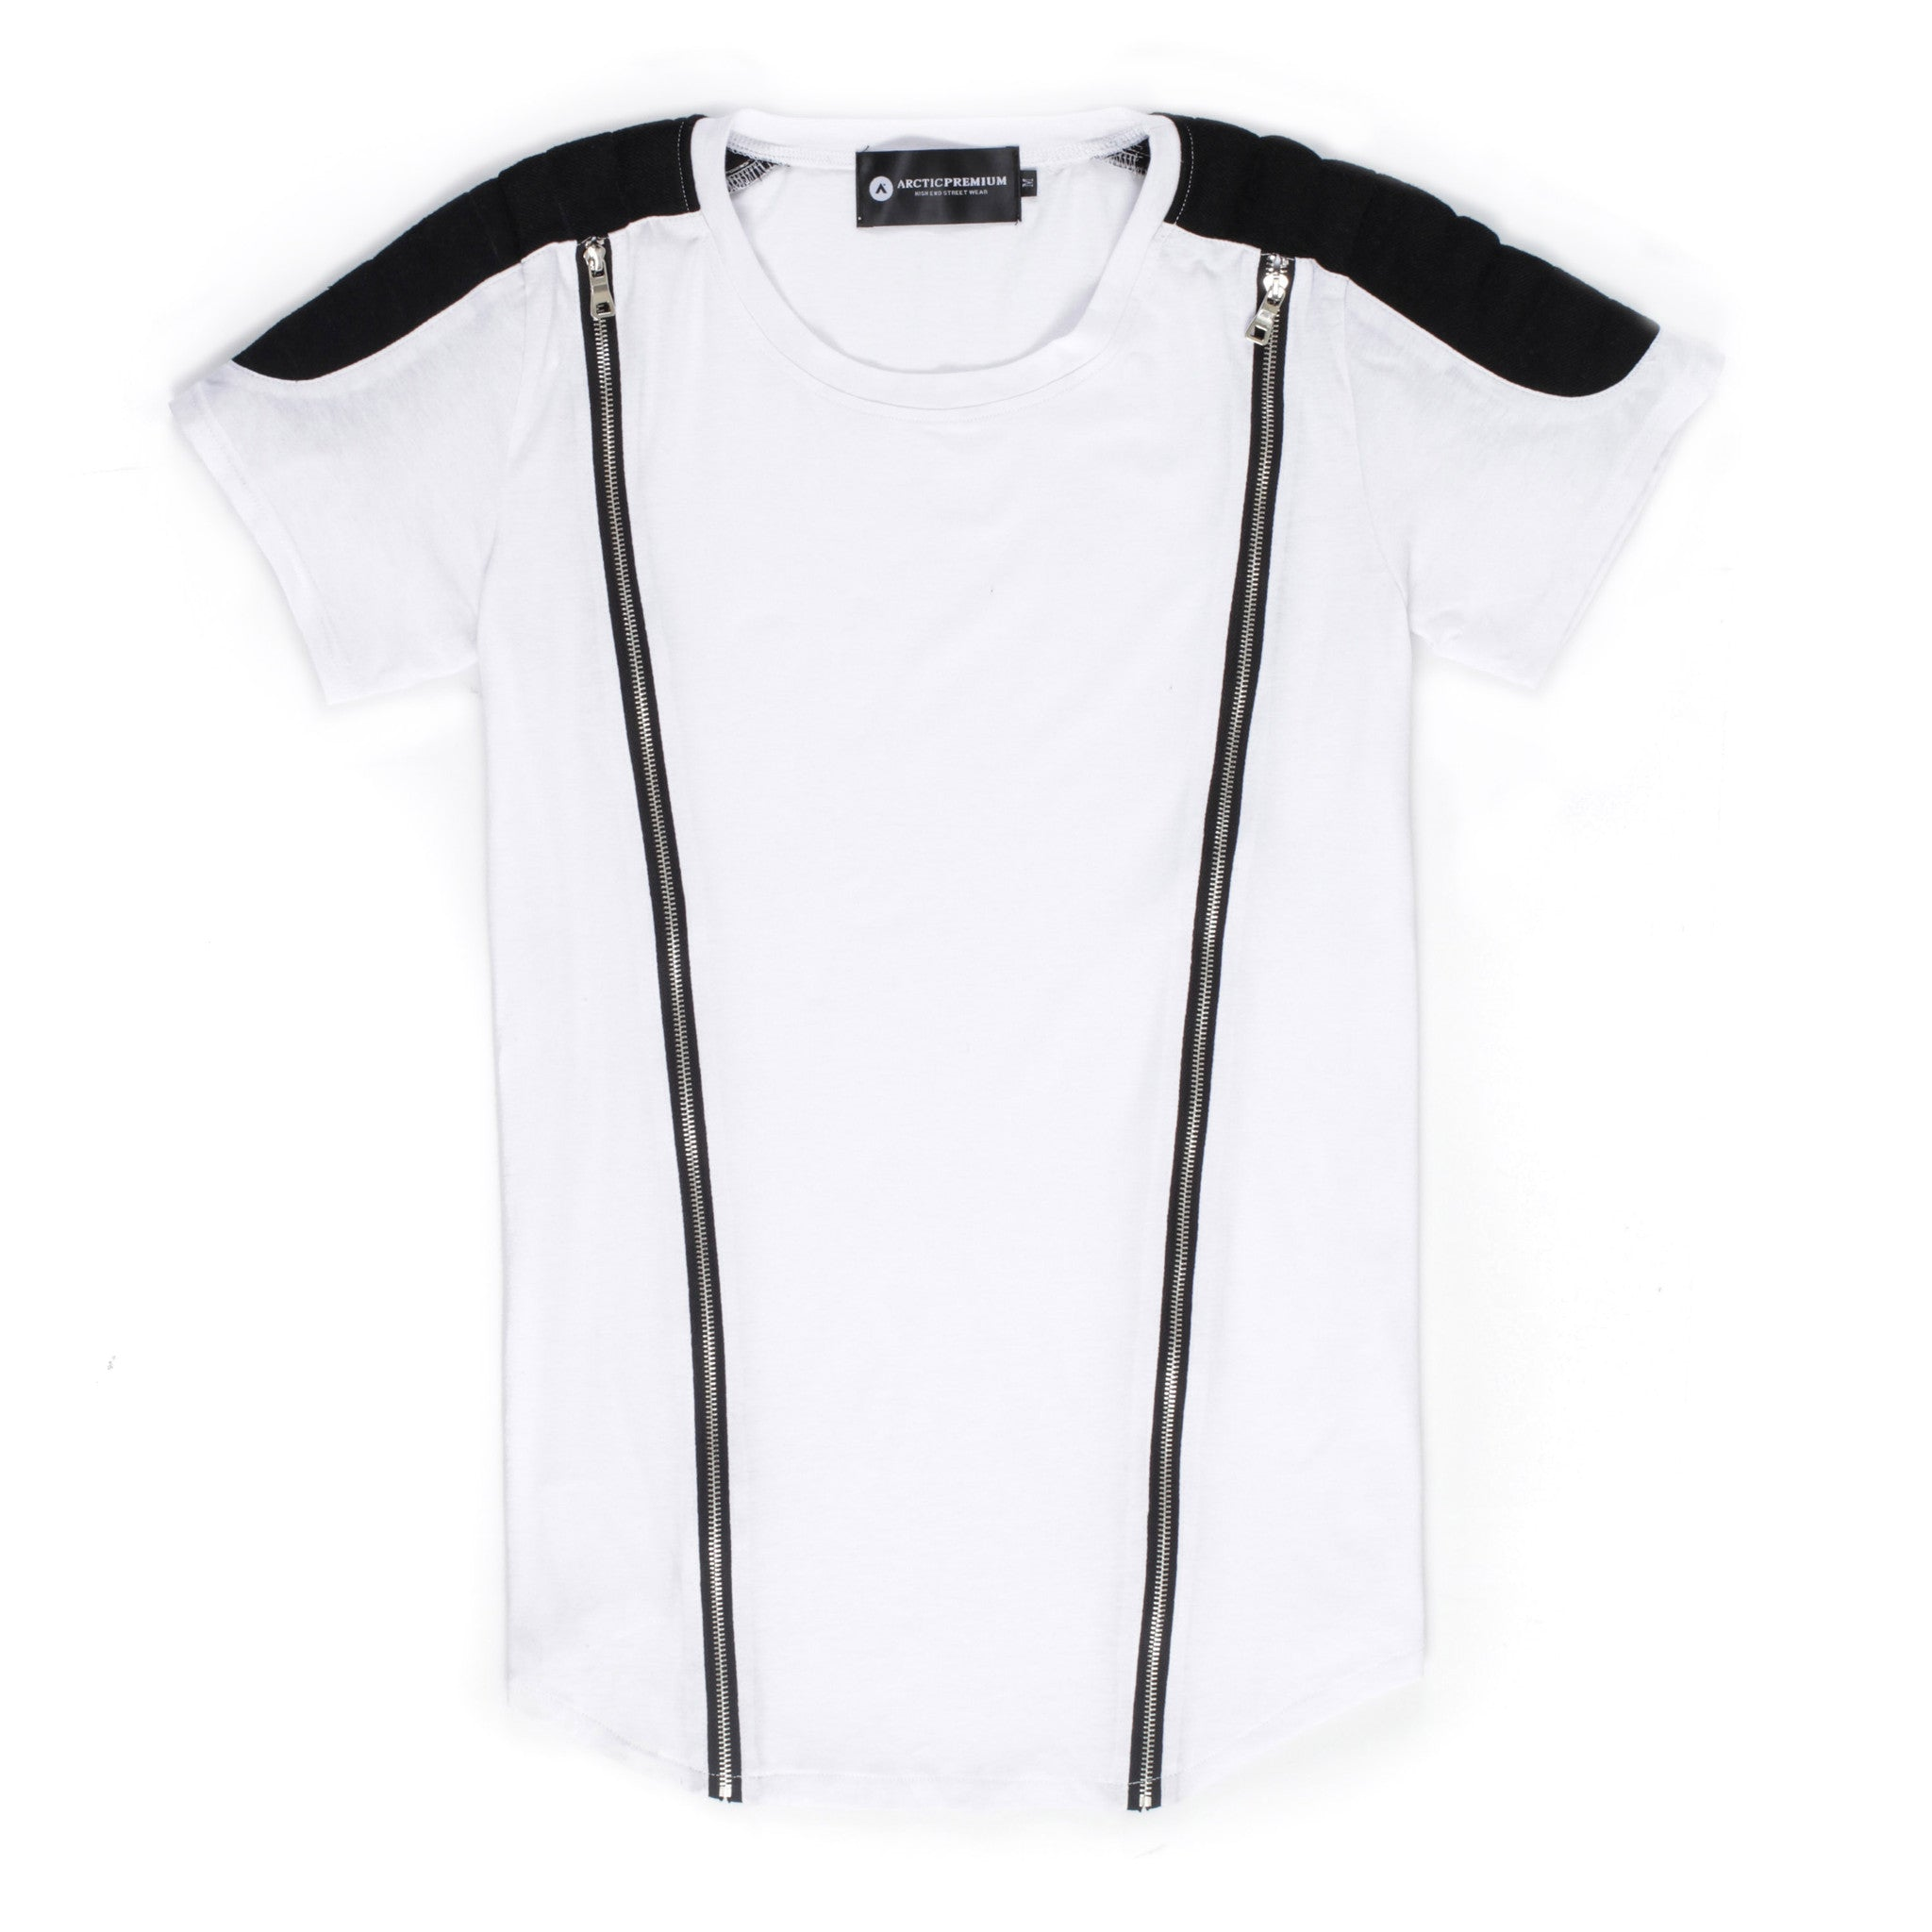 Viper Zippered Moto Shirt (White/Black)